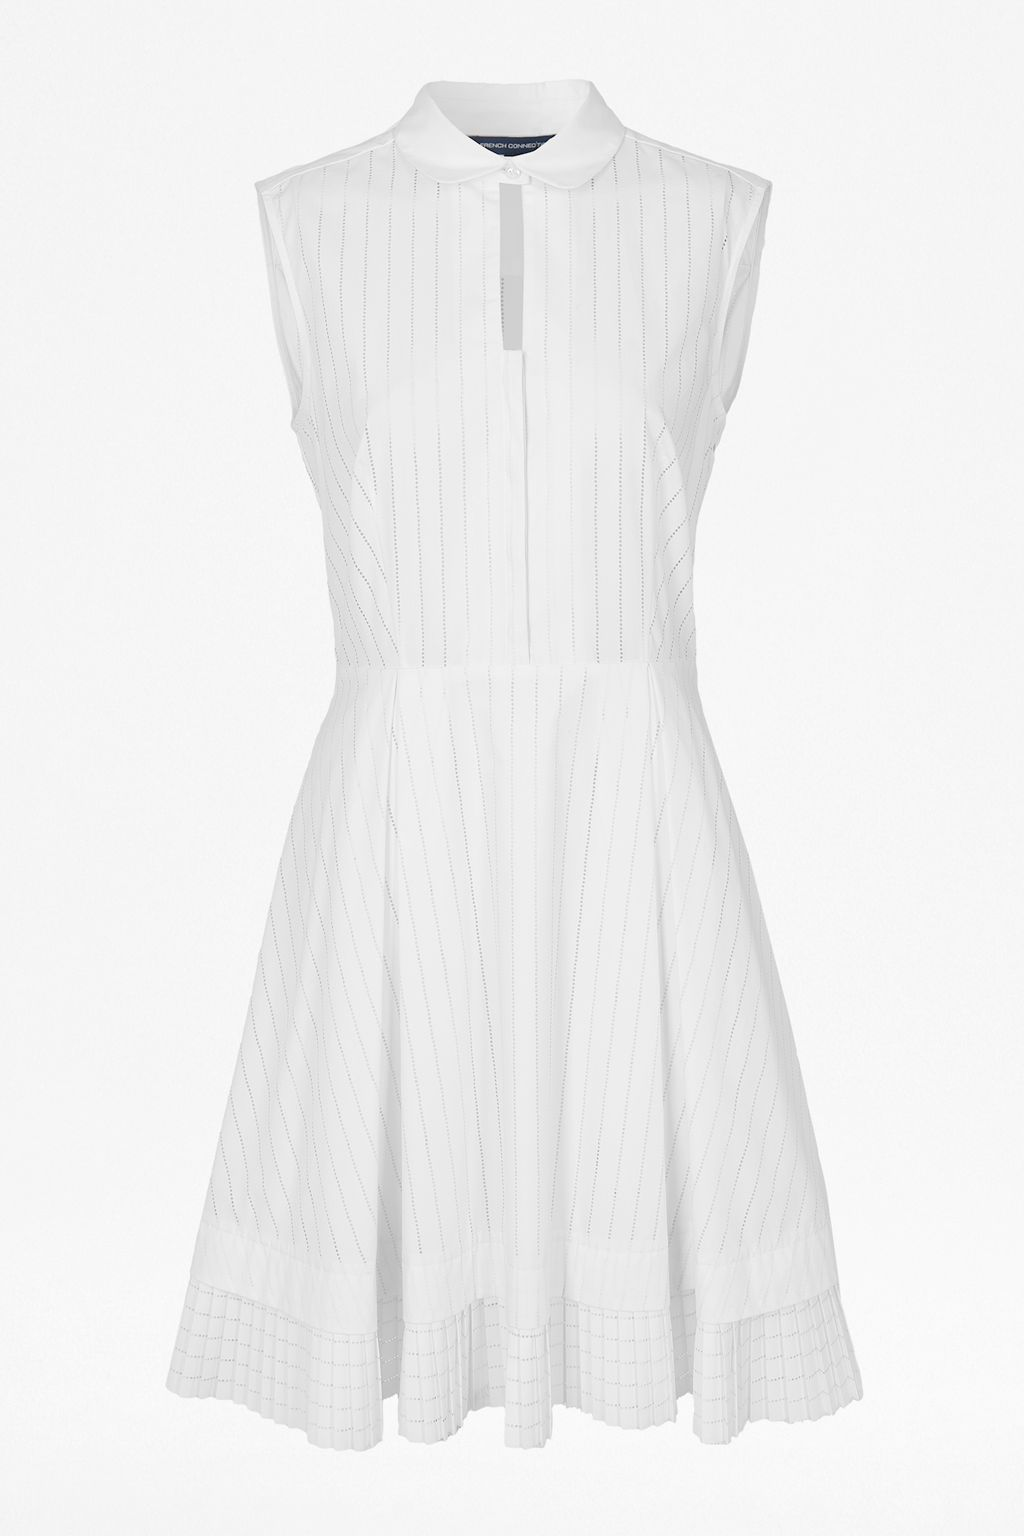 Pixel cotton sleeveless shirt dress